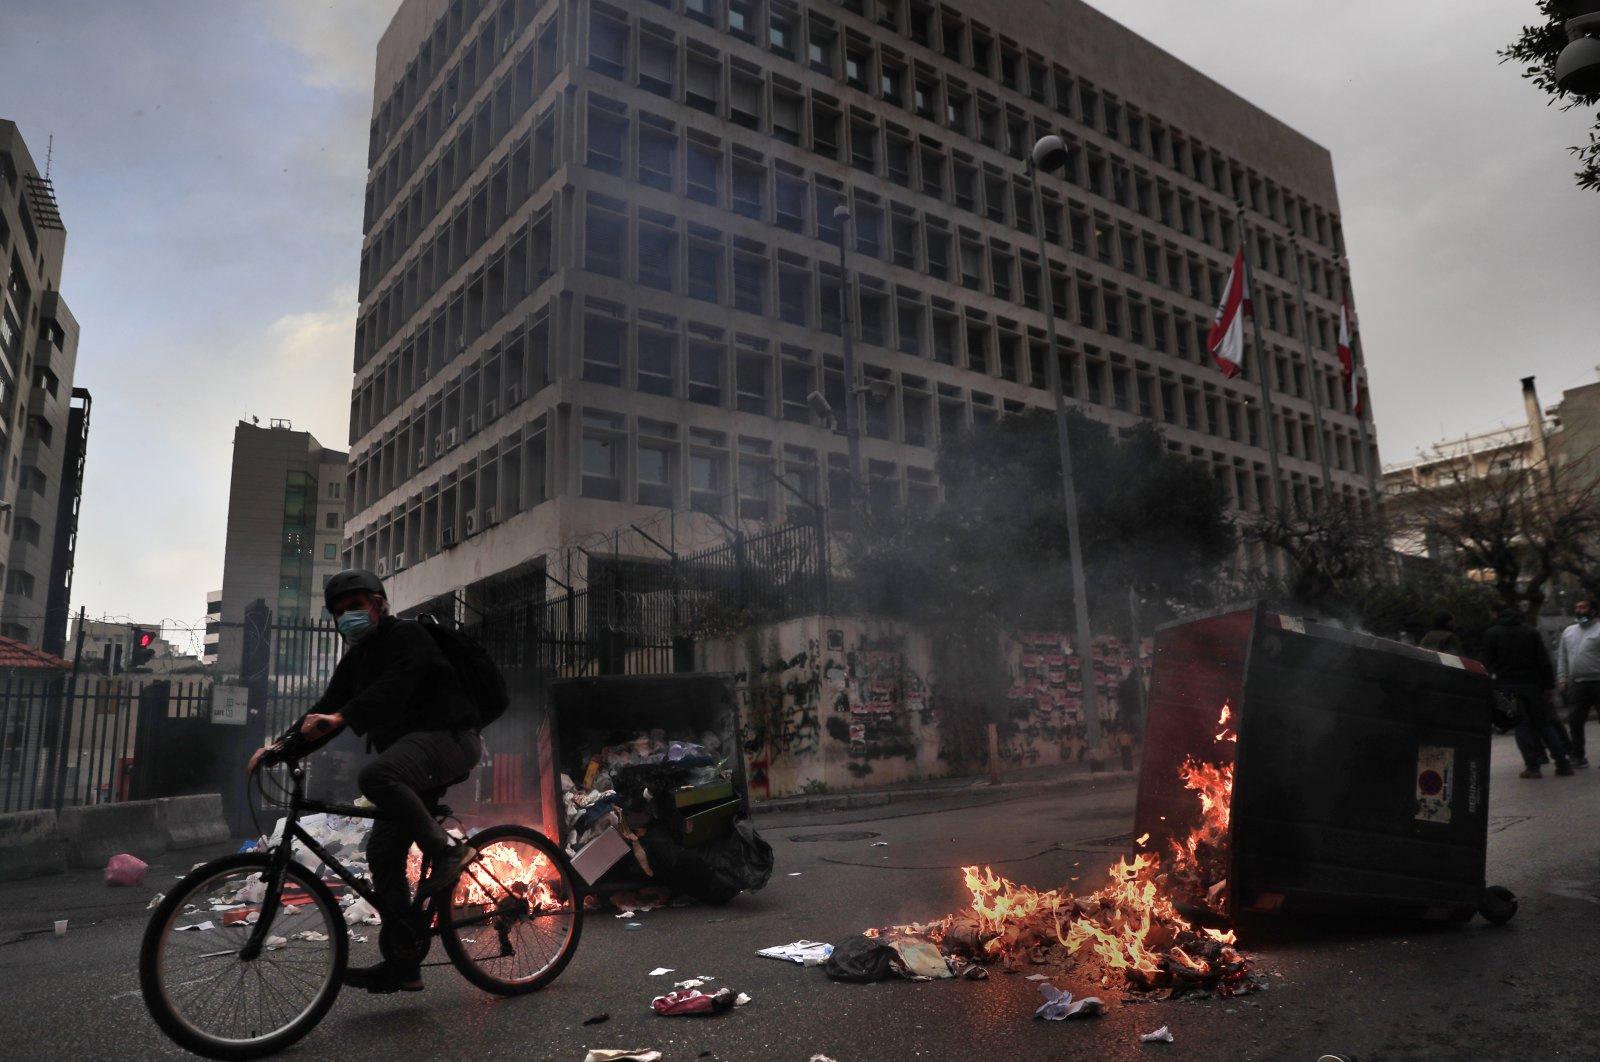 A man rides his bicycle past garbage containers set on fire by protesters blocking a main road in front of the Lebanese Central Bank building, Beirut, Lebanon, March 22, 2021. (AP Photo)